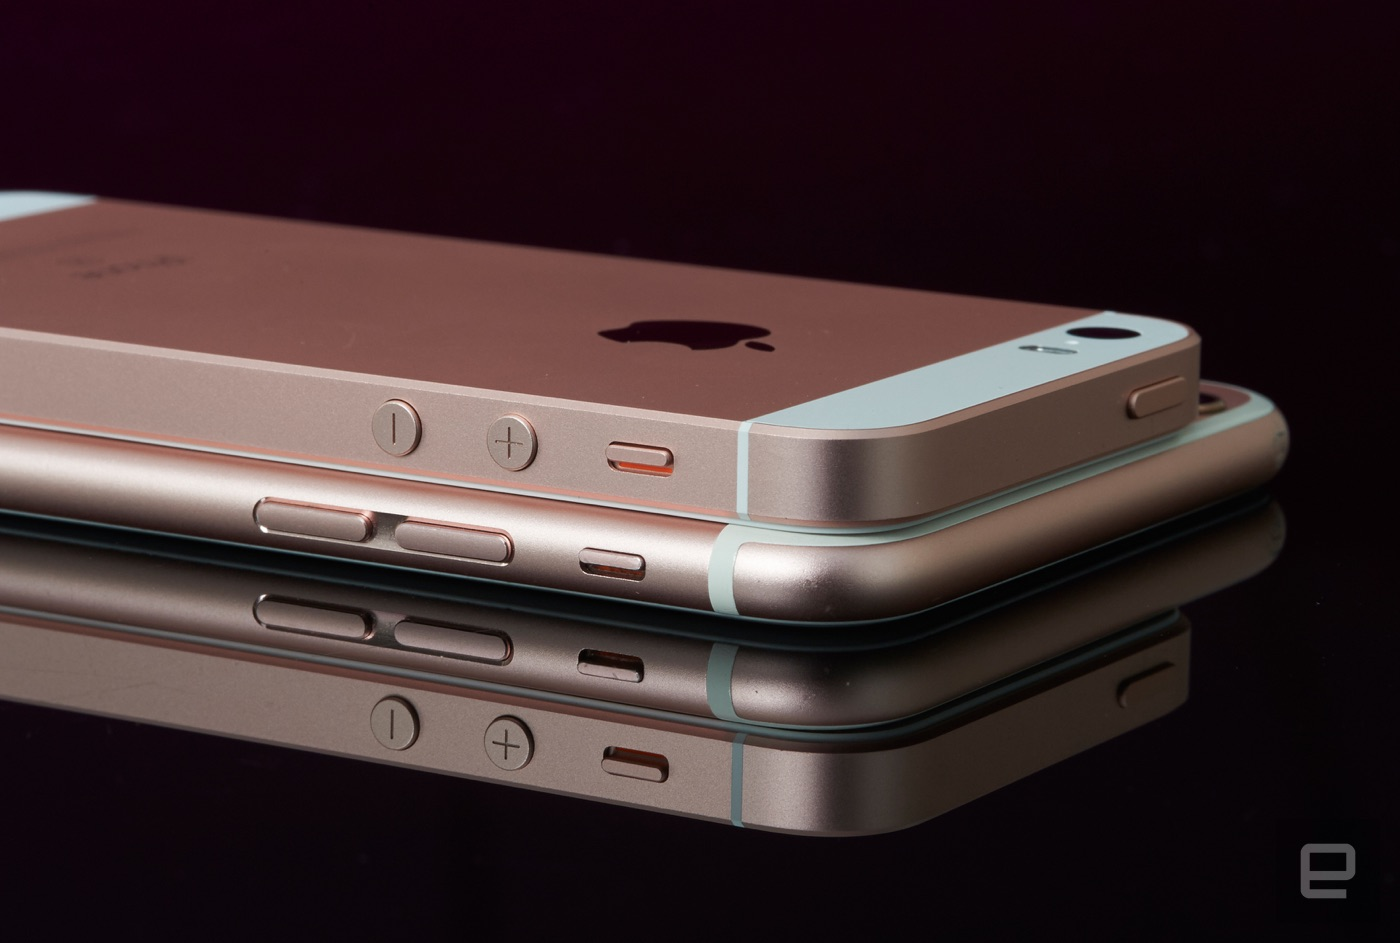 Apple Iphone Se Review A Compelling Blend Of Old And New 16 Gb Grey The Competition Ses Combination Price Power 16gb